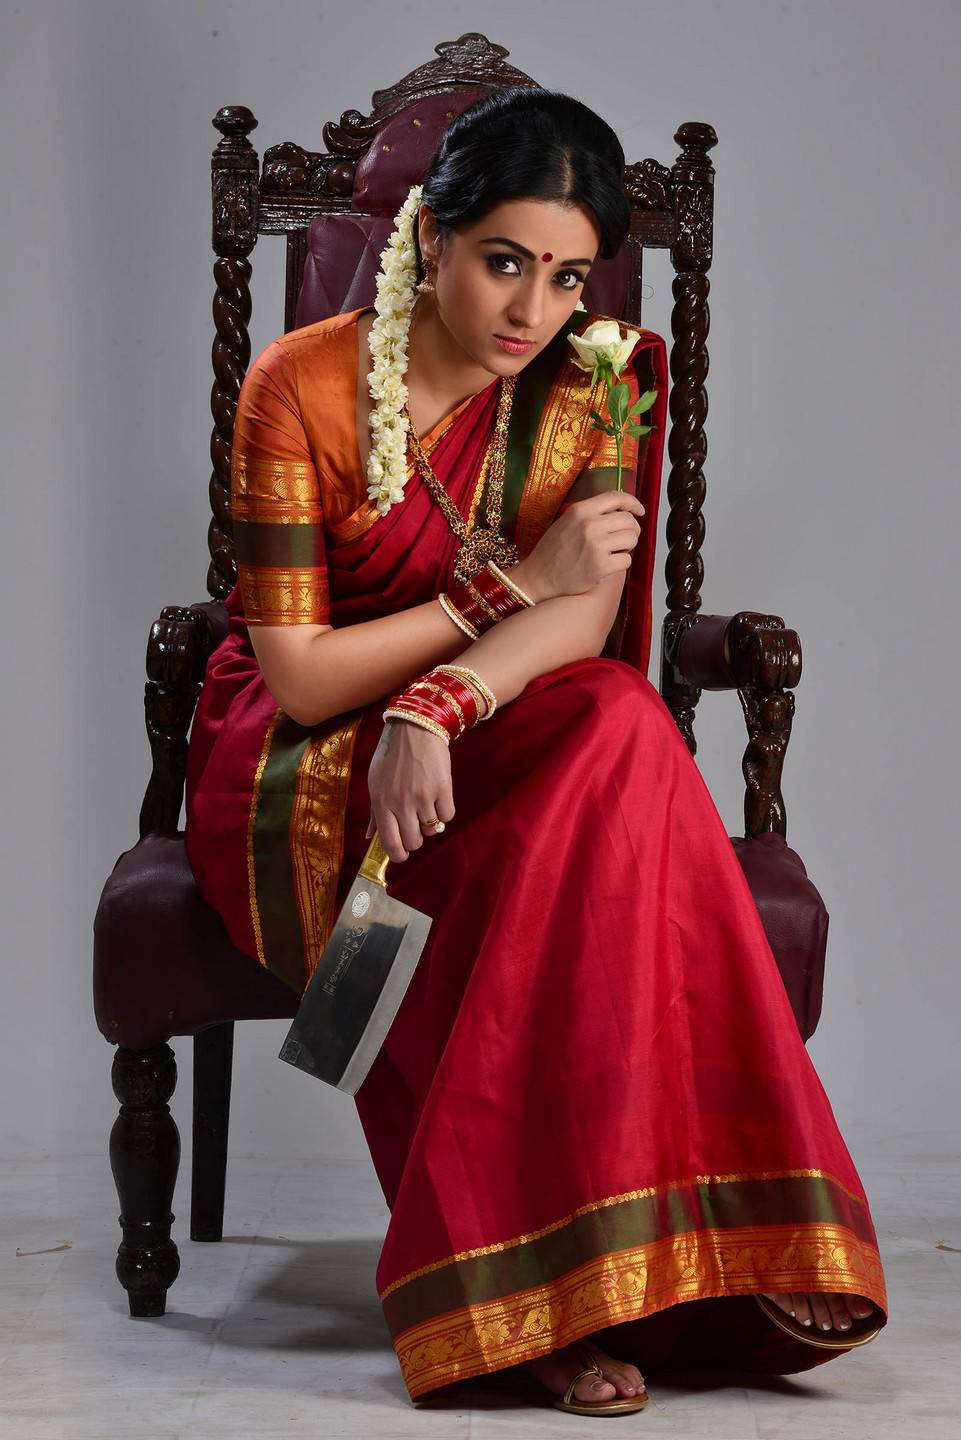 Nayaki Telugu Movie Stills | Trisha